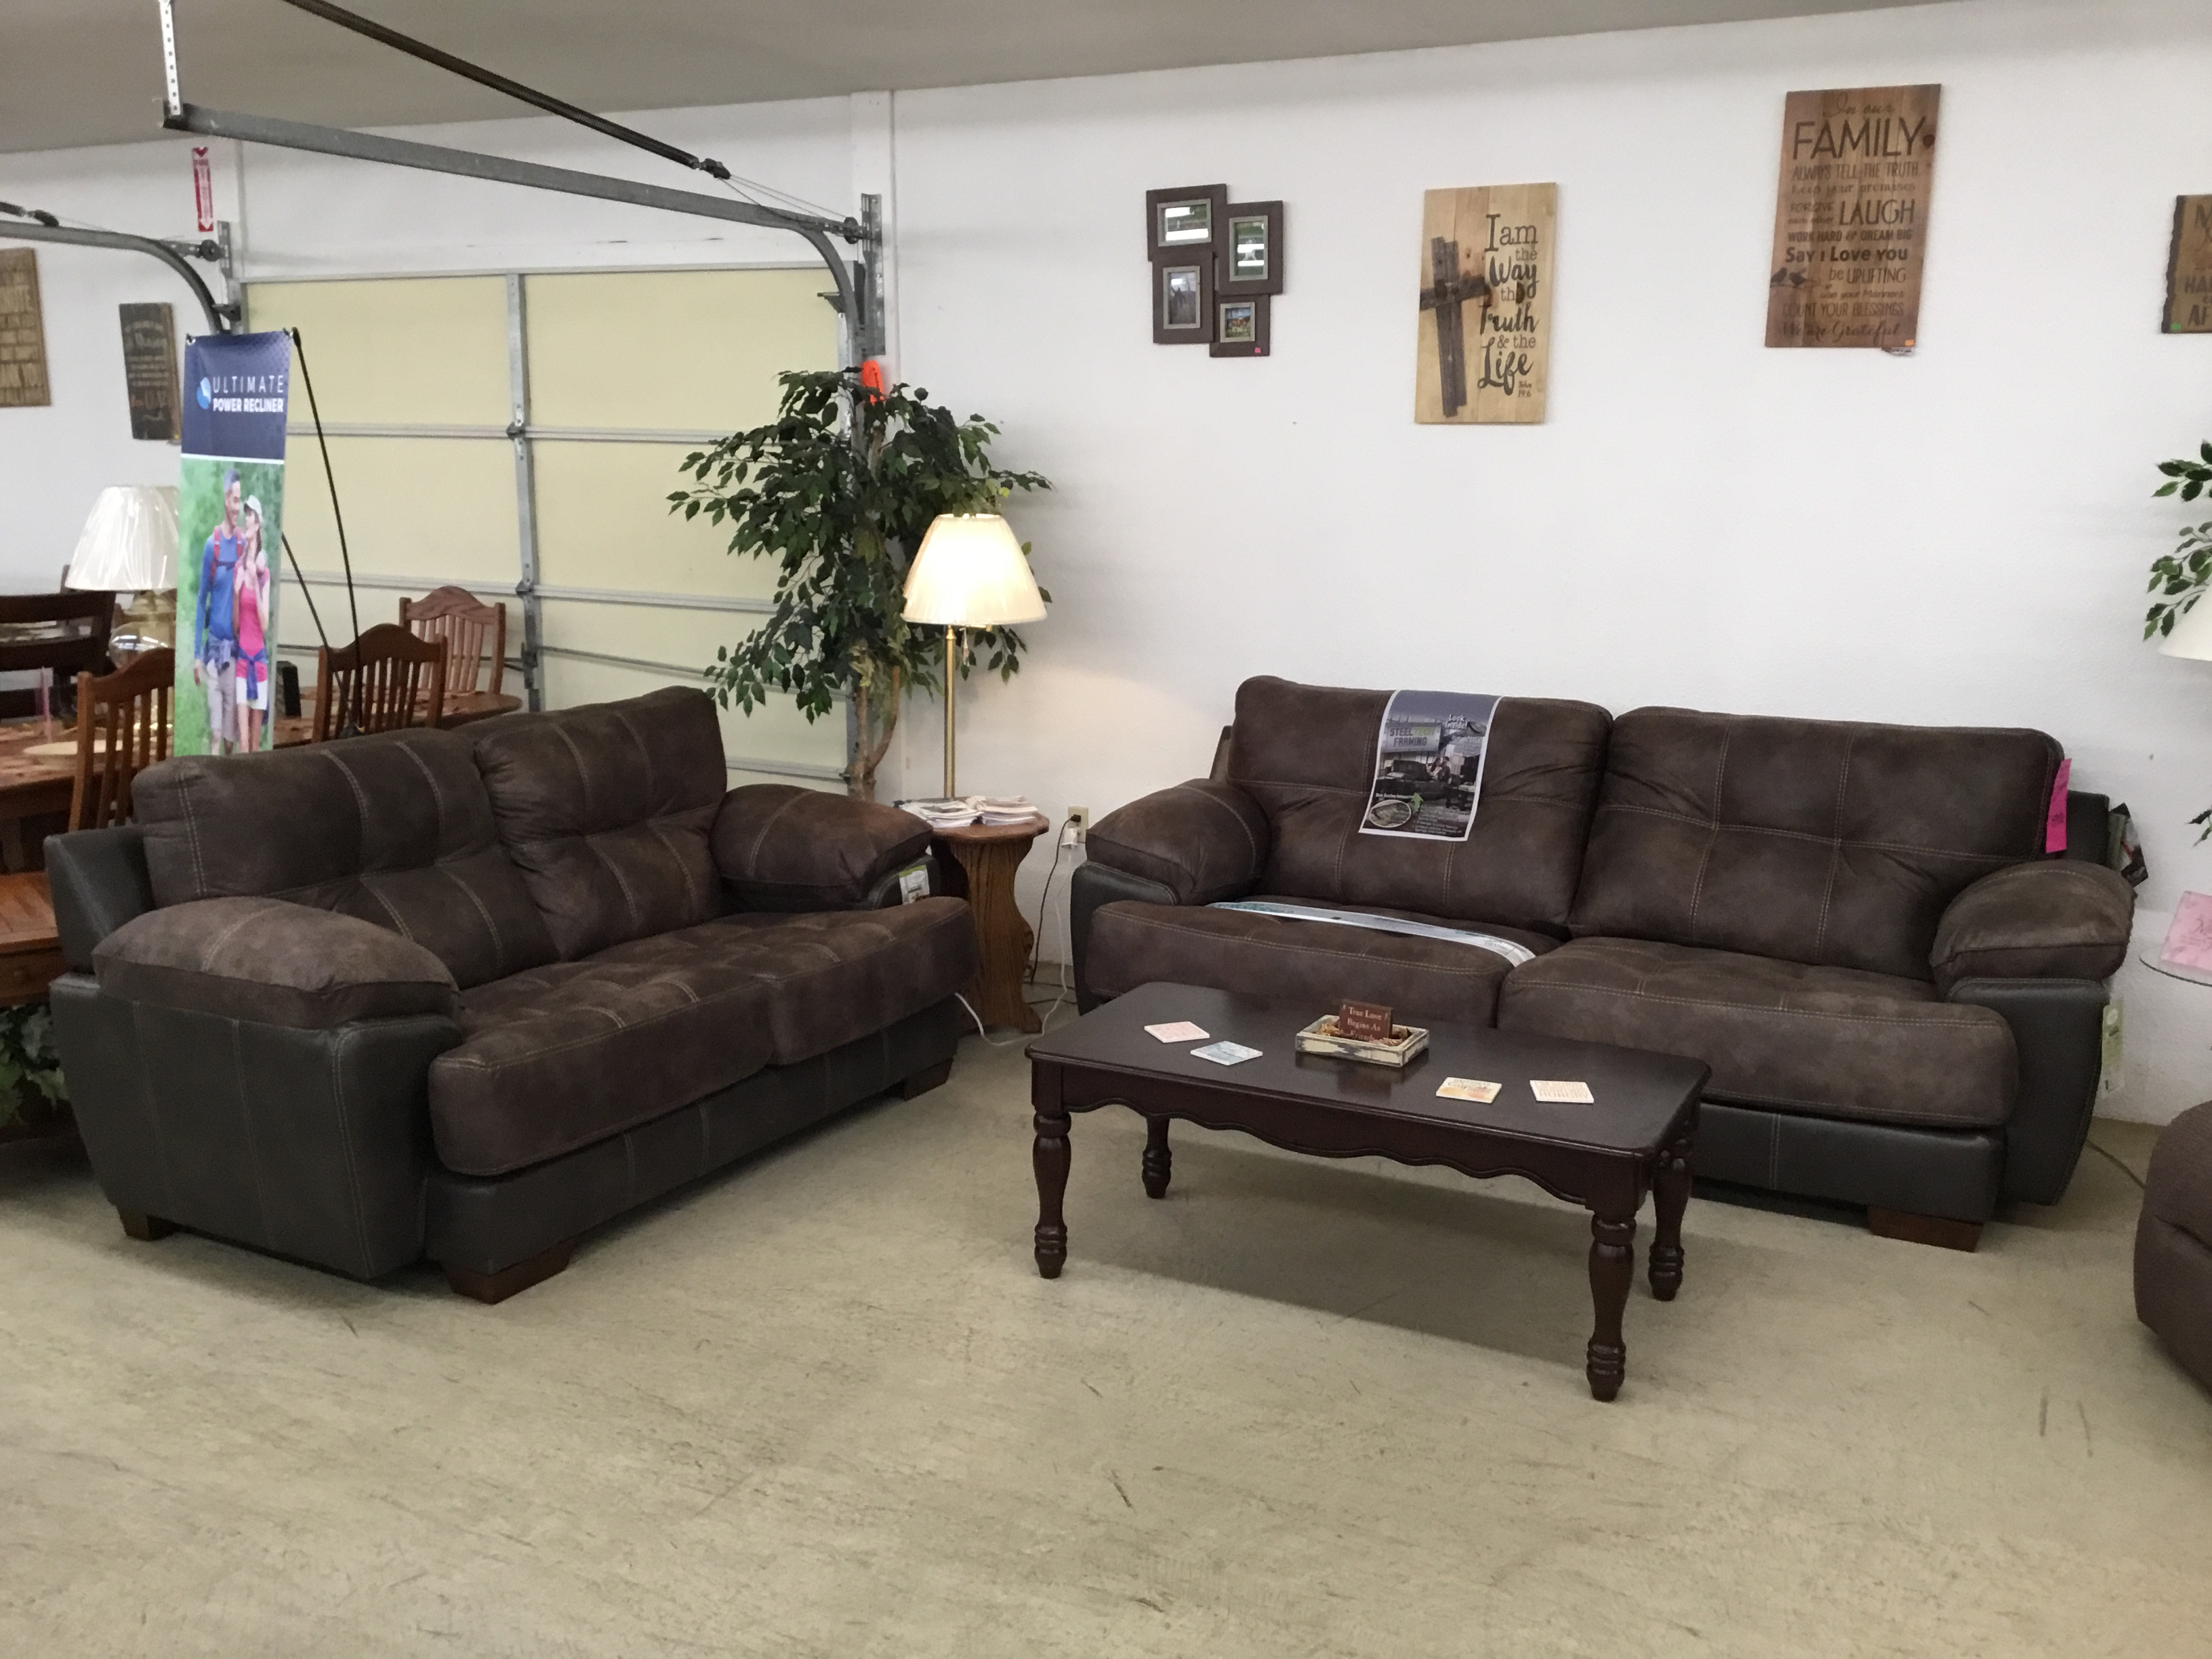 Freedom Furniture Couches Sponsored Freedom Furniture All American Sale Happening